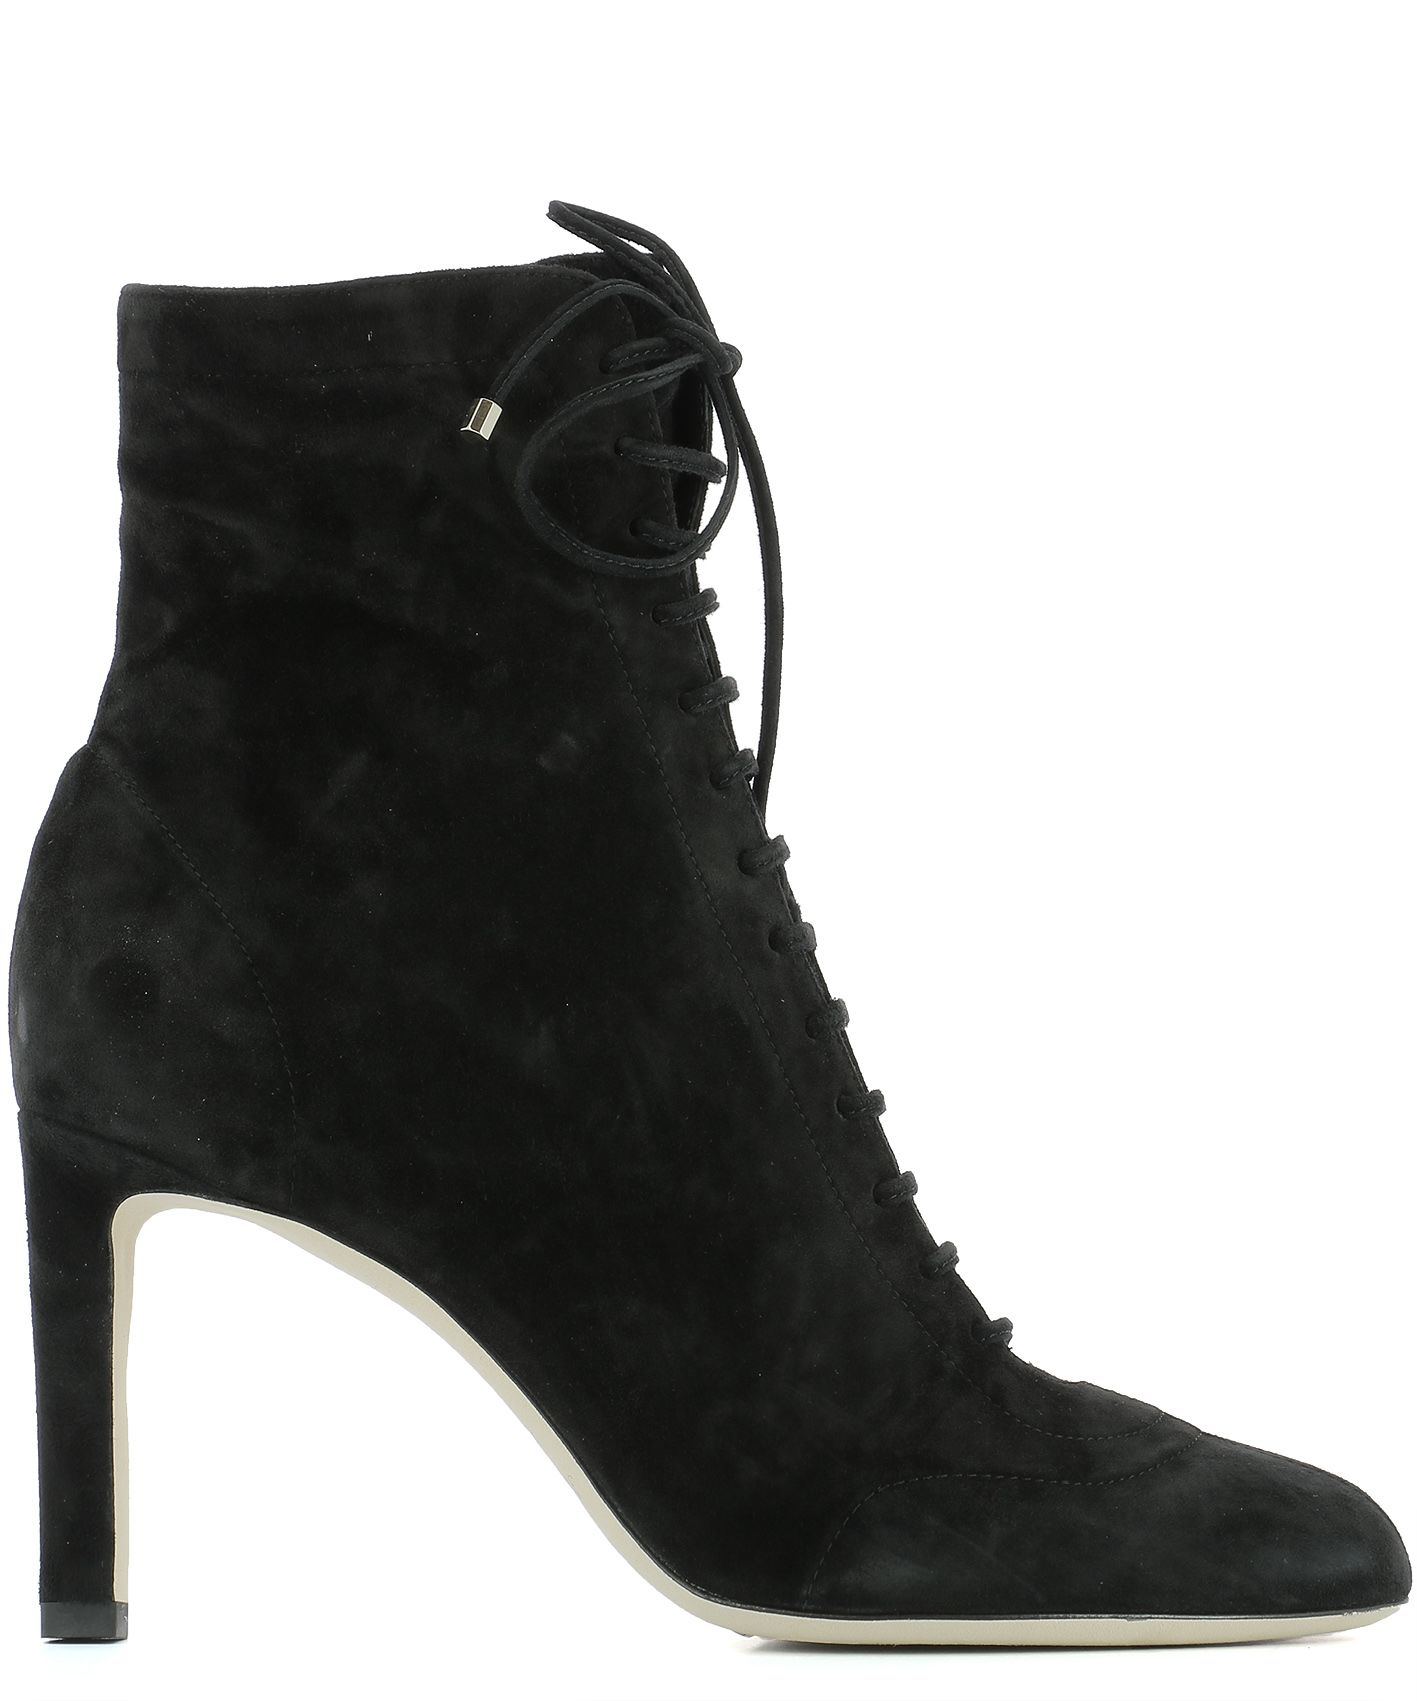 jimmy choo black suede heeled ankle boots daize 85 hsc